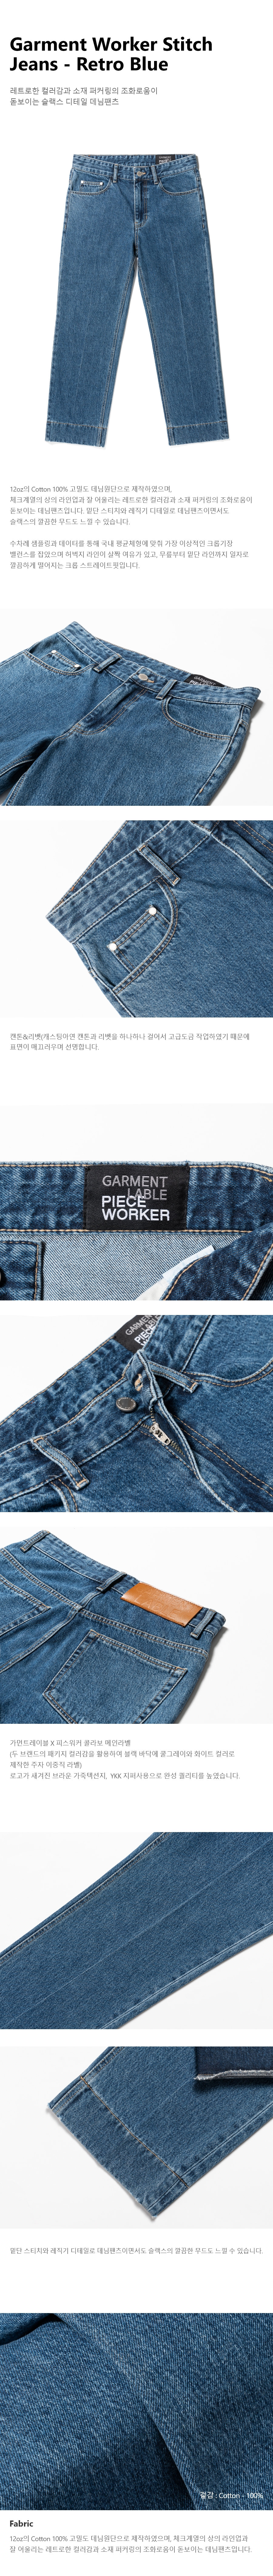 가먼트레이블(GARMENT LABLE) [2차 리오더]Garment Worker Stitch Jeans / Tapered (Retro Blue)